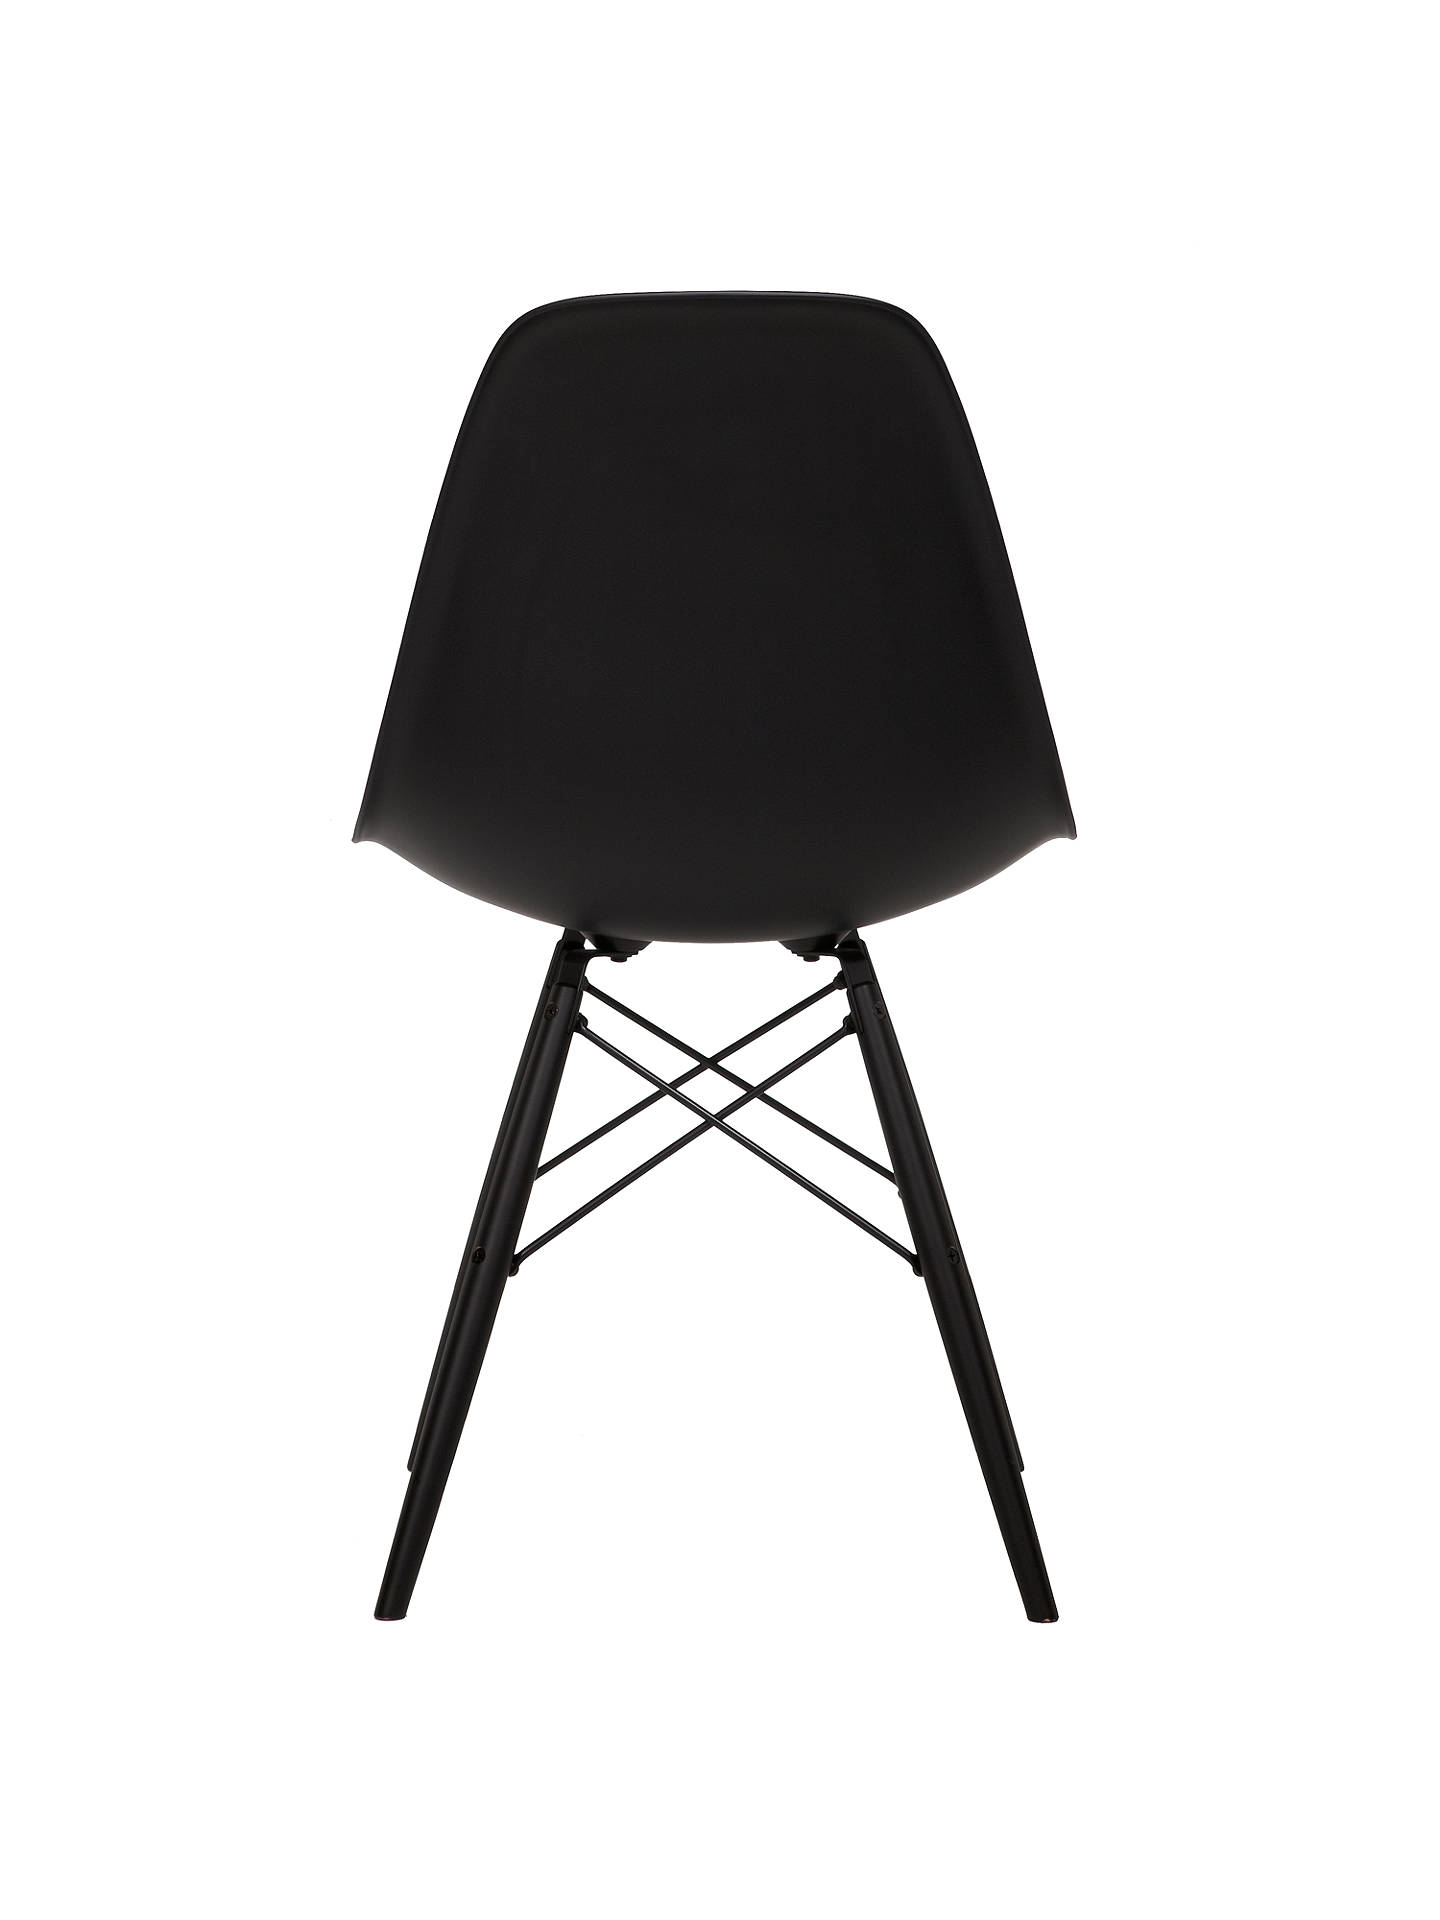 BuyVitra Eames DSW Side Chair, Black Maple Leg, Black Online at johnlewis.com